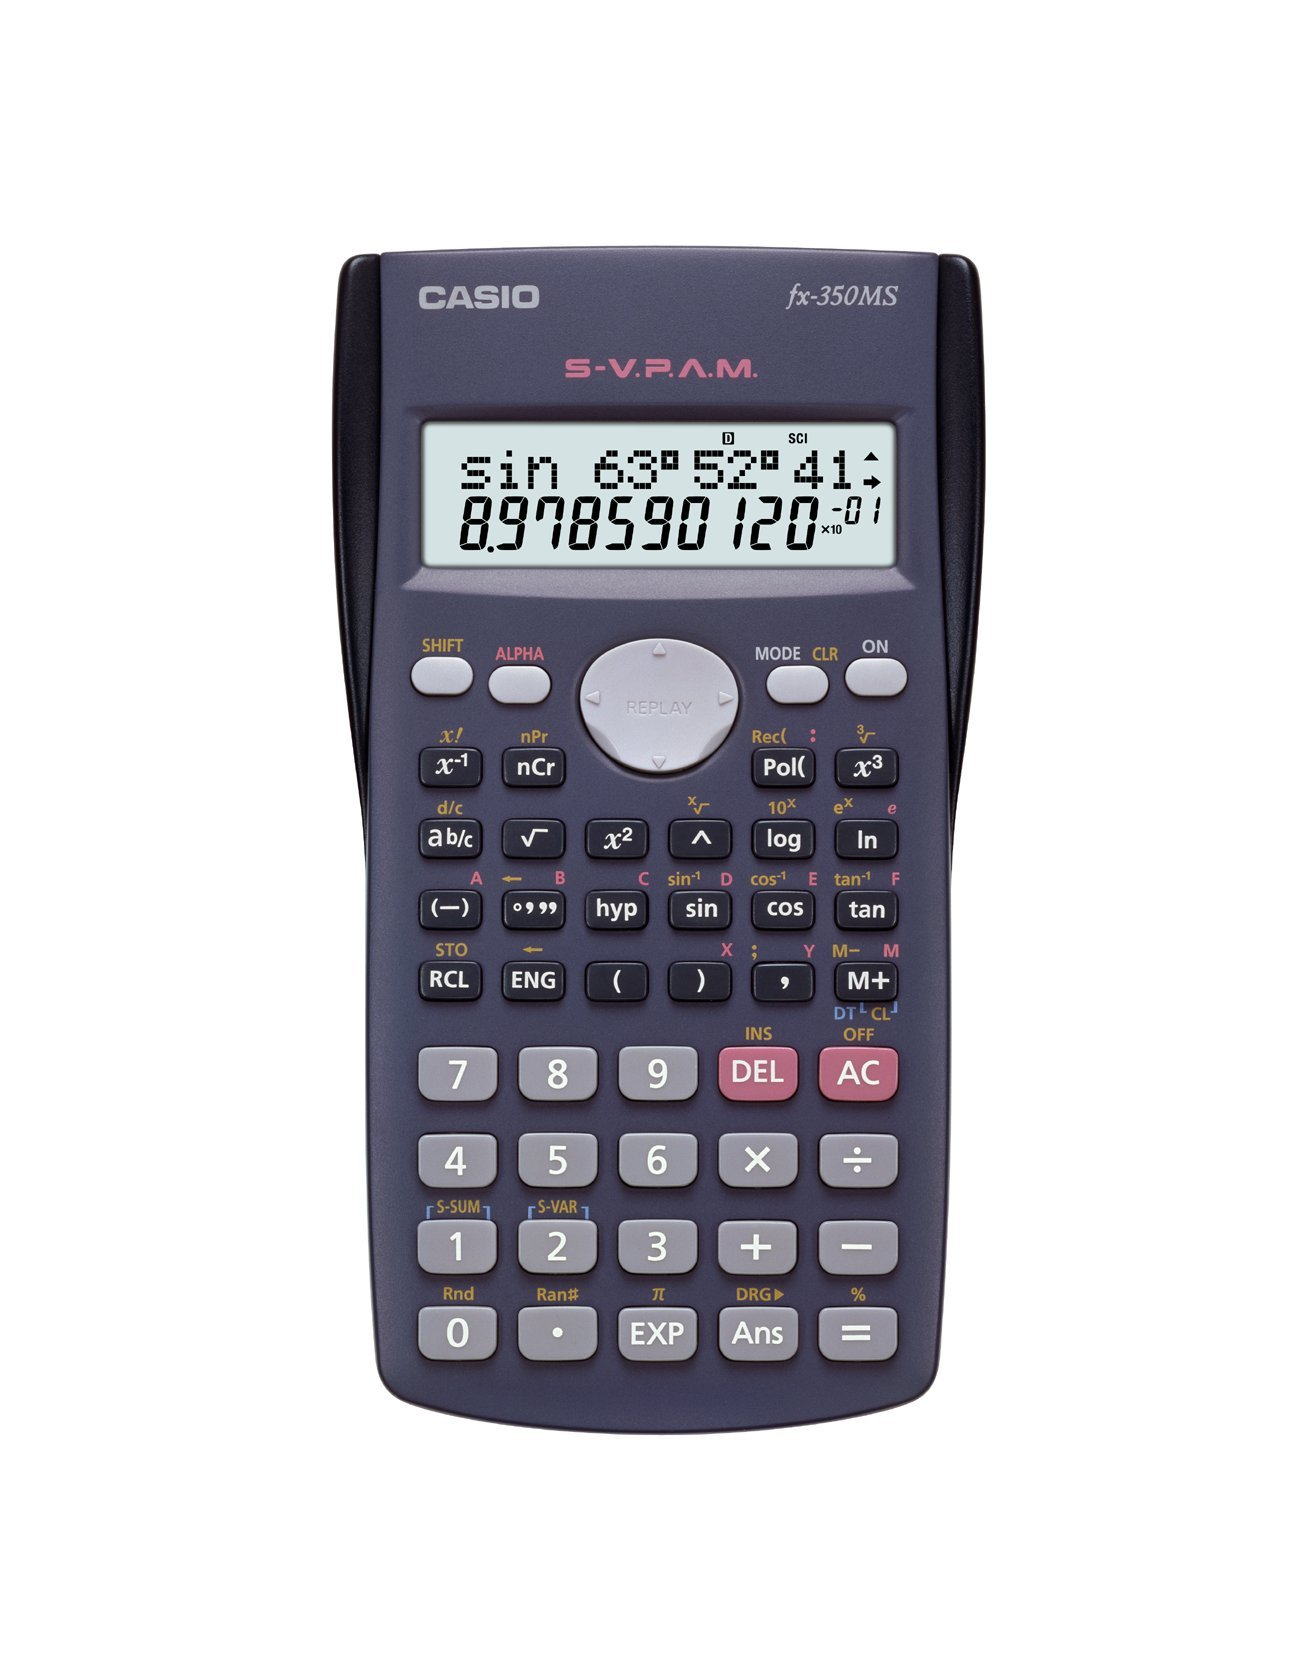 Casio Fx350 Fx-350ms Display Scientific Calculations Calculator with 240 Functions Limited Edition by Casio